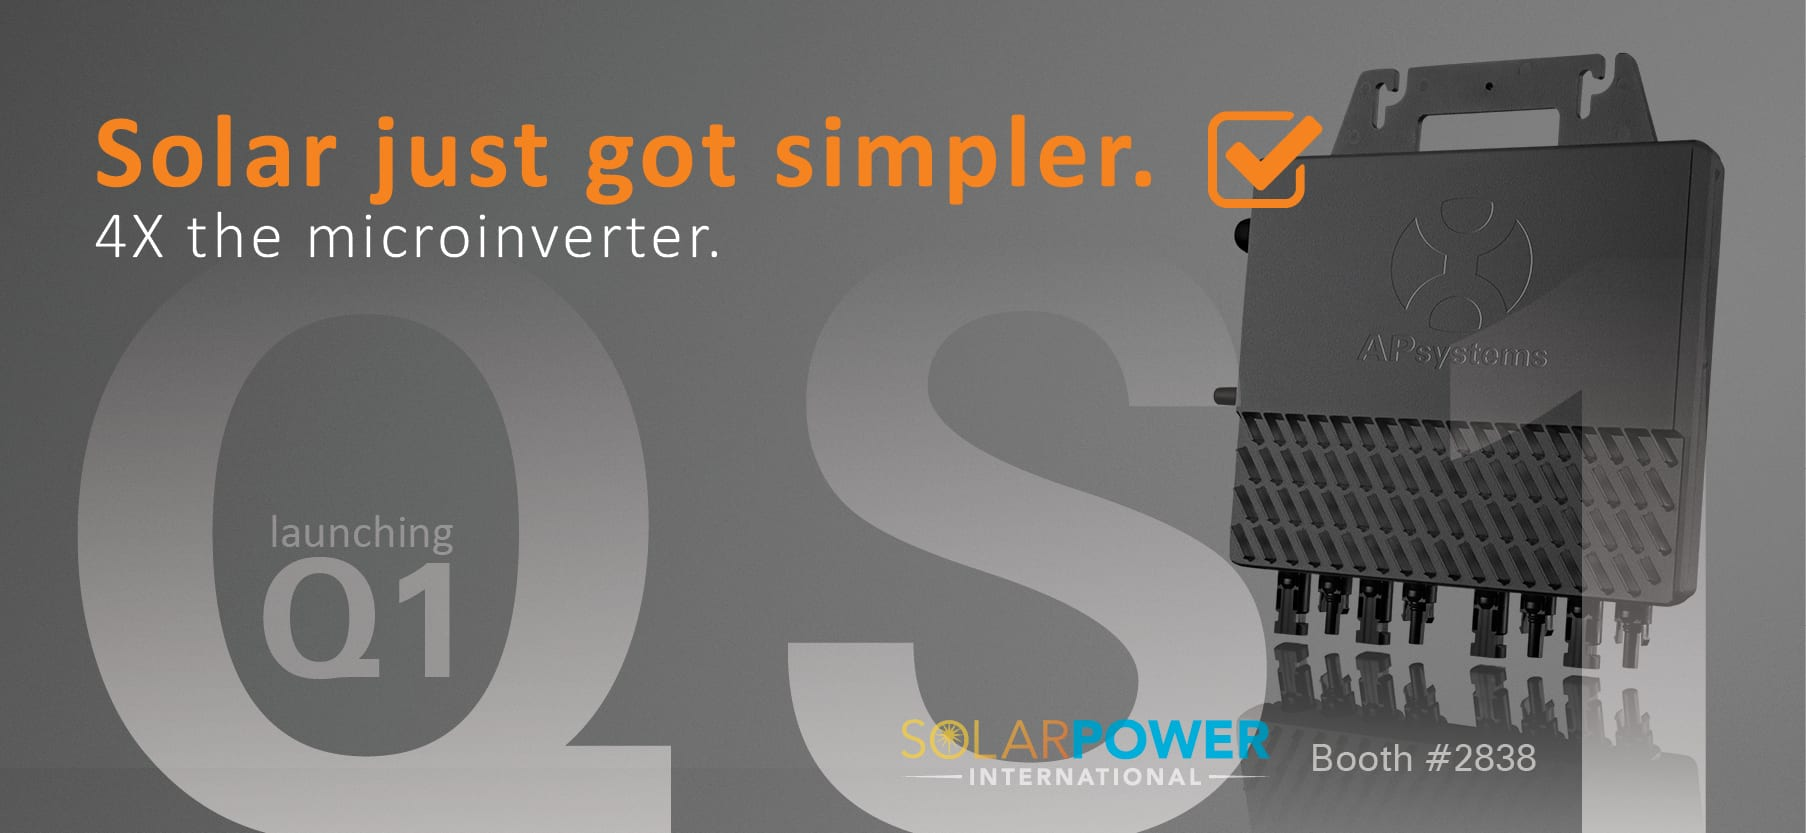 Apsystems To Launch Qs1 Four Module 1200w Microinverter At